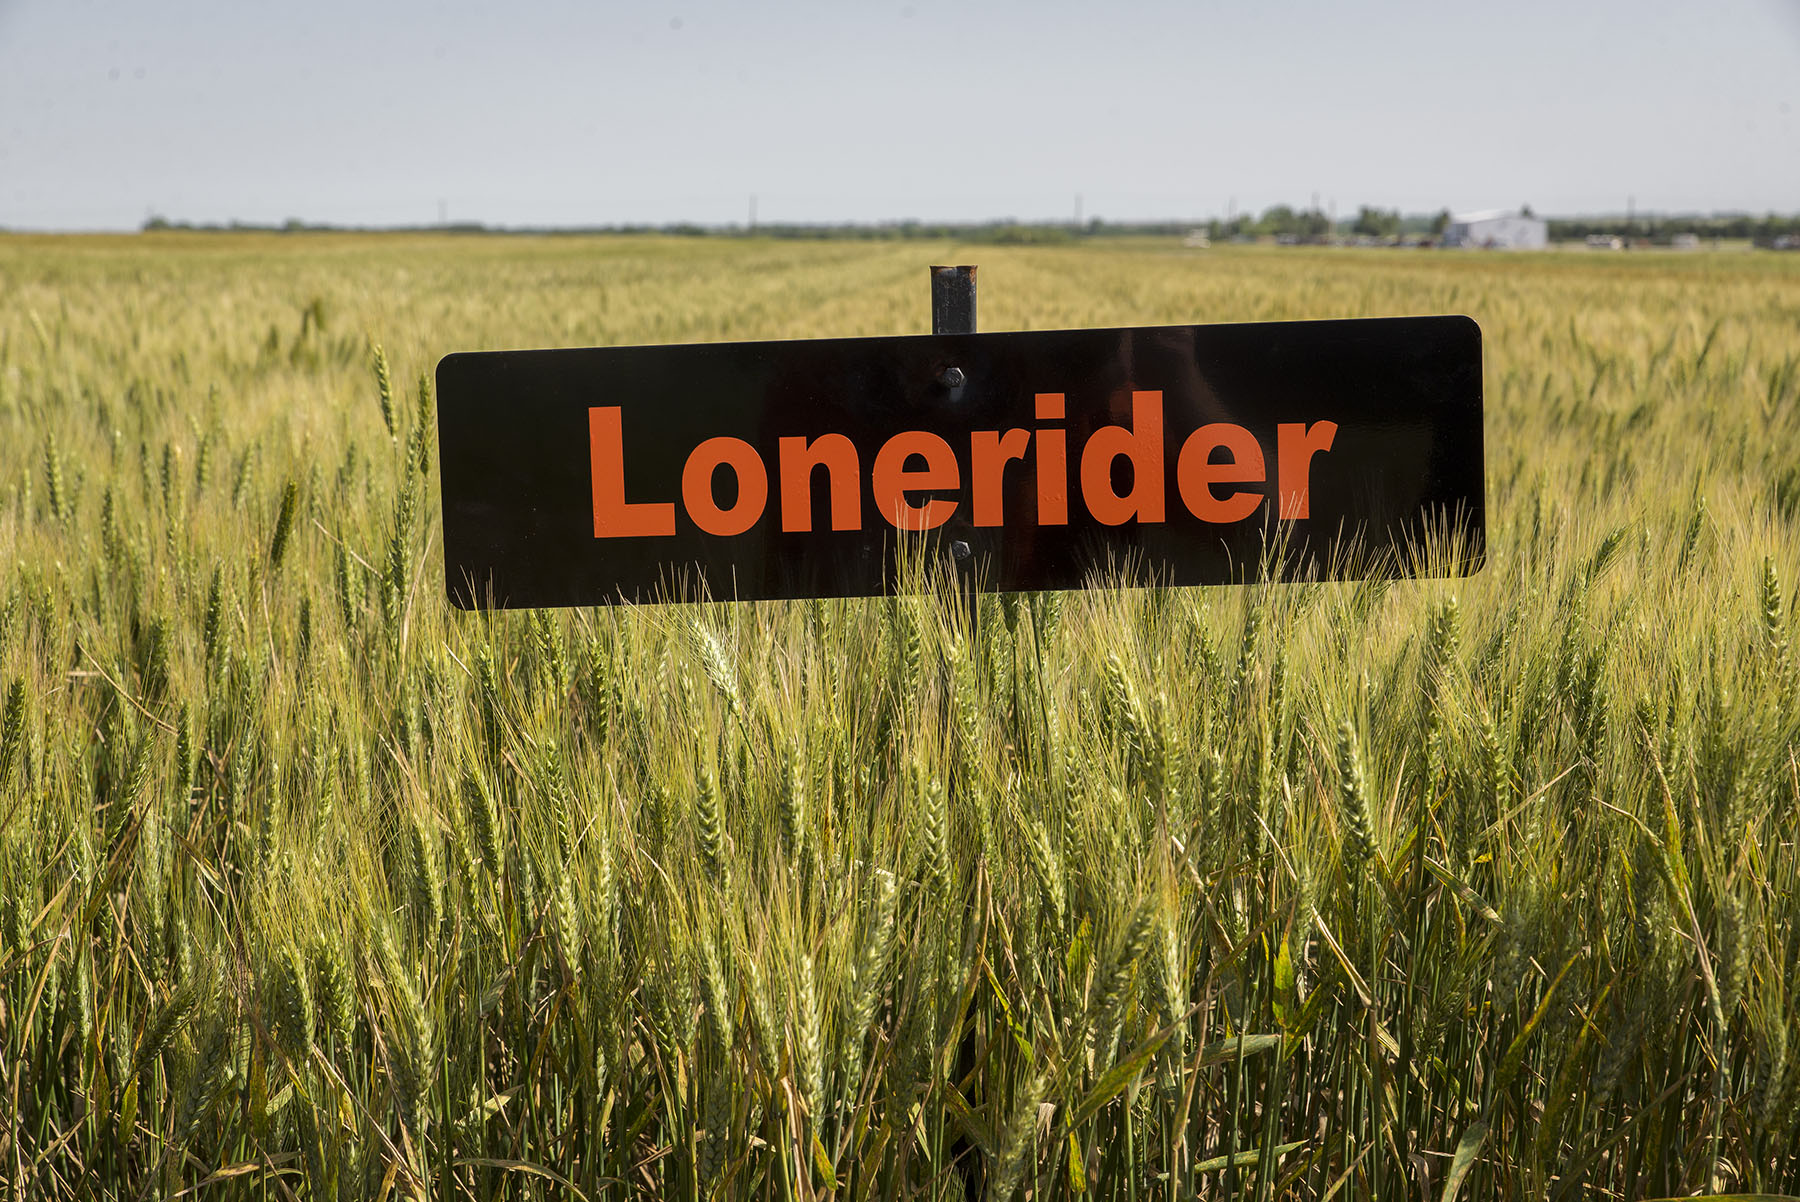 Lonerider completes trio of 2017 OSU wheat releases